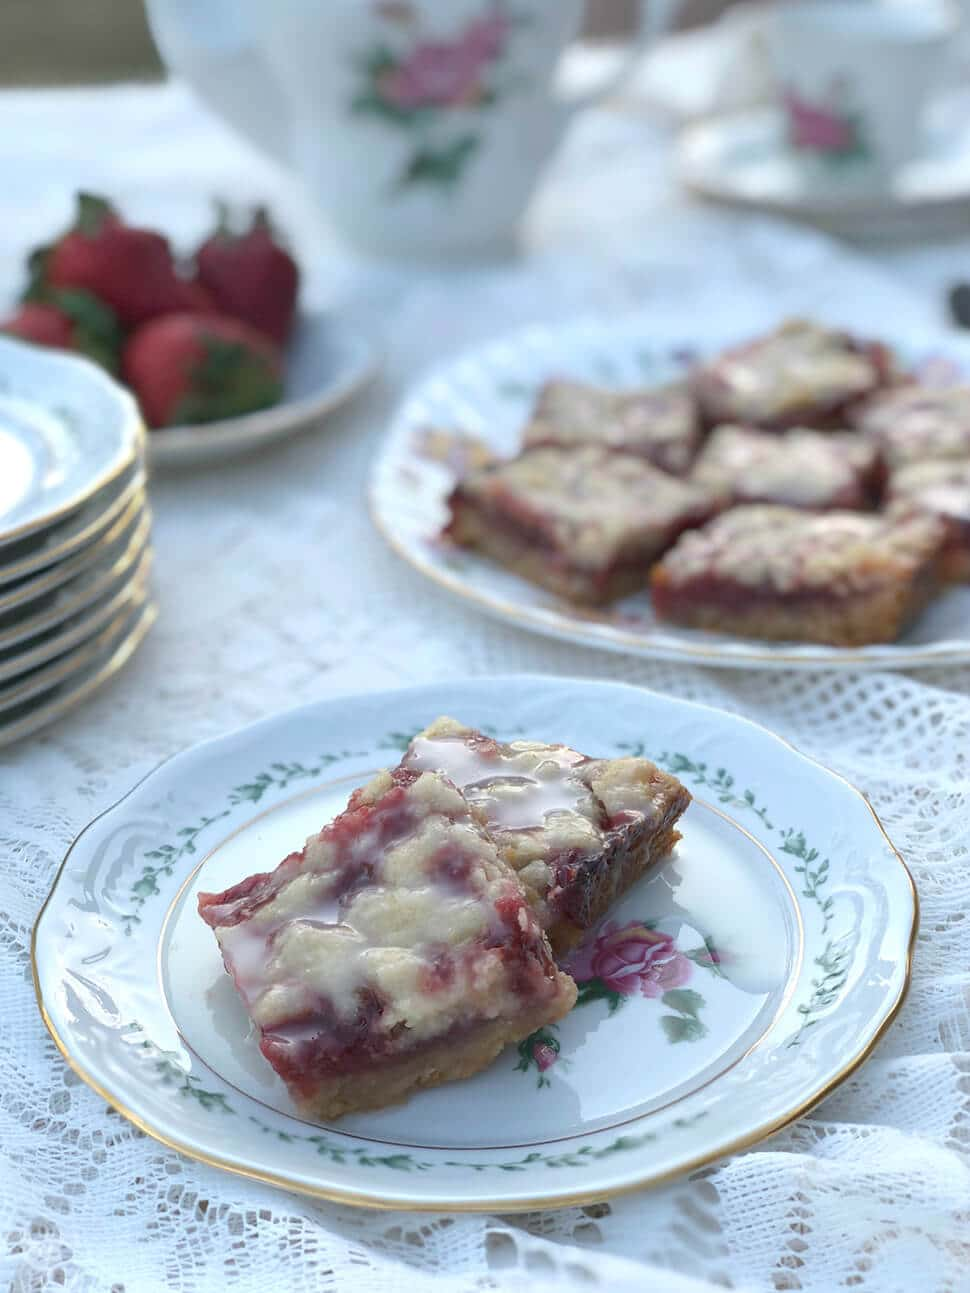 Two strawberry bars on a plate for serving with a platter in the background.